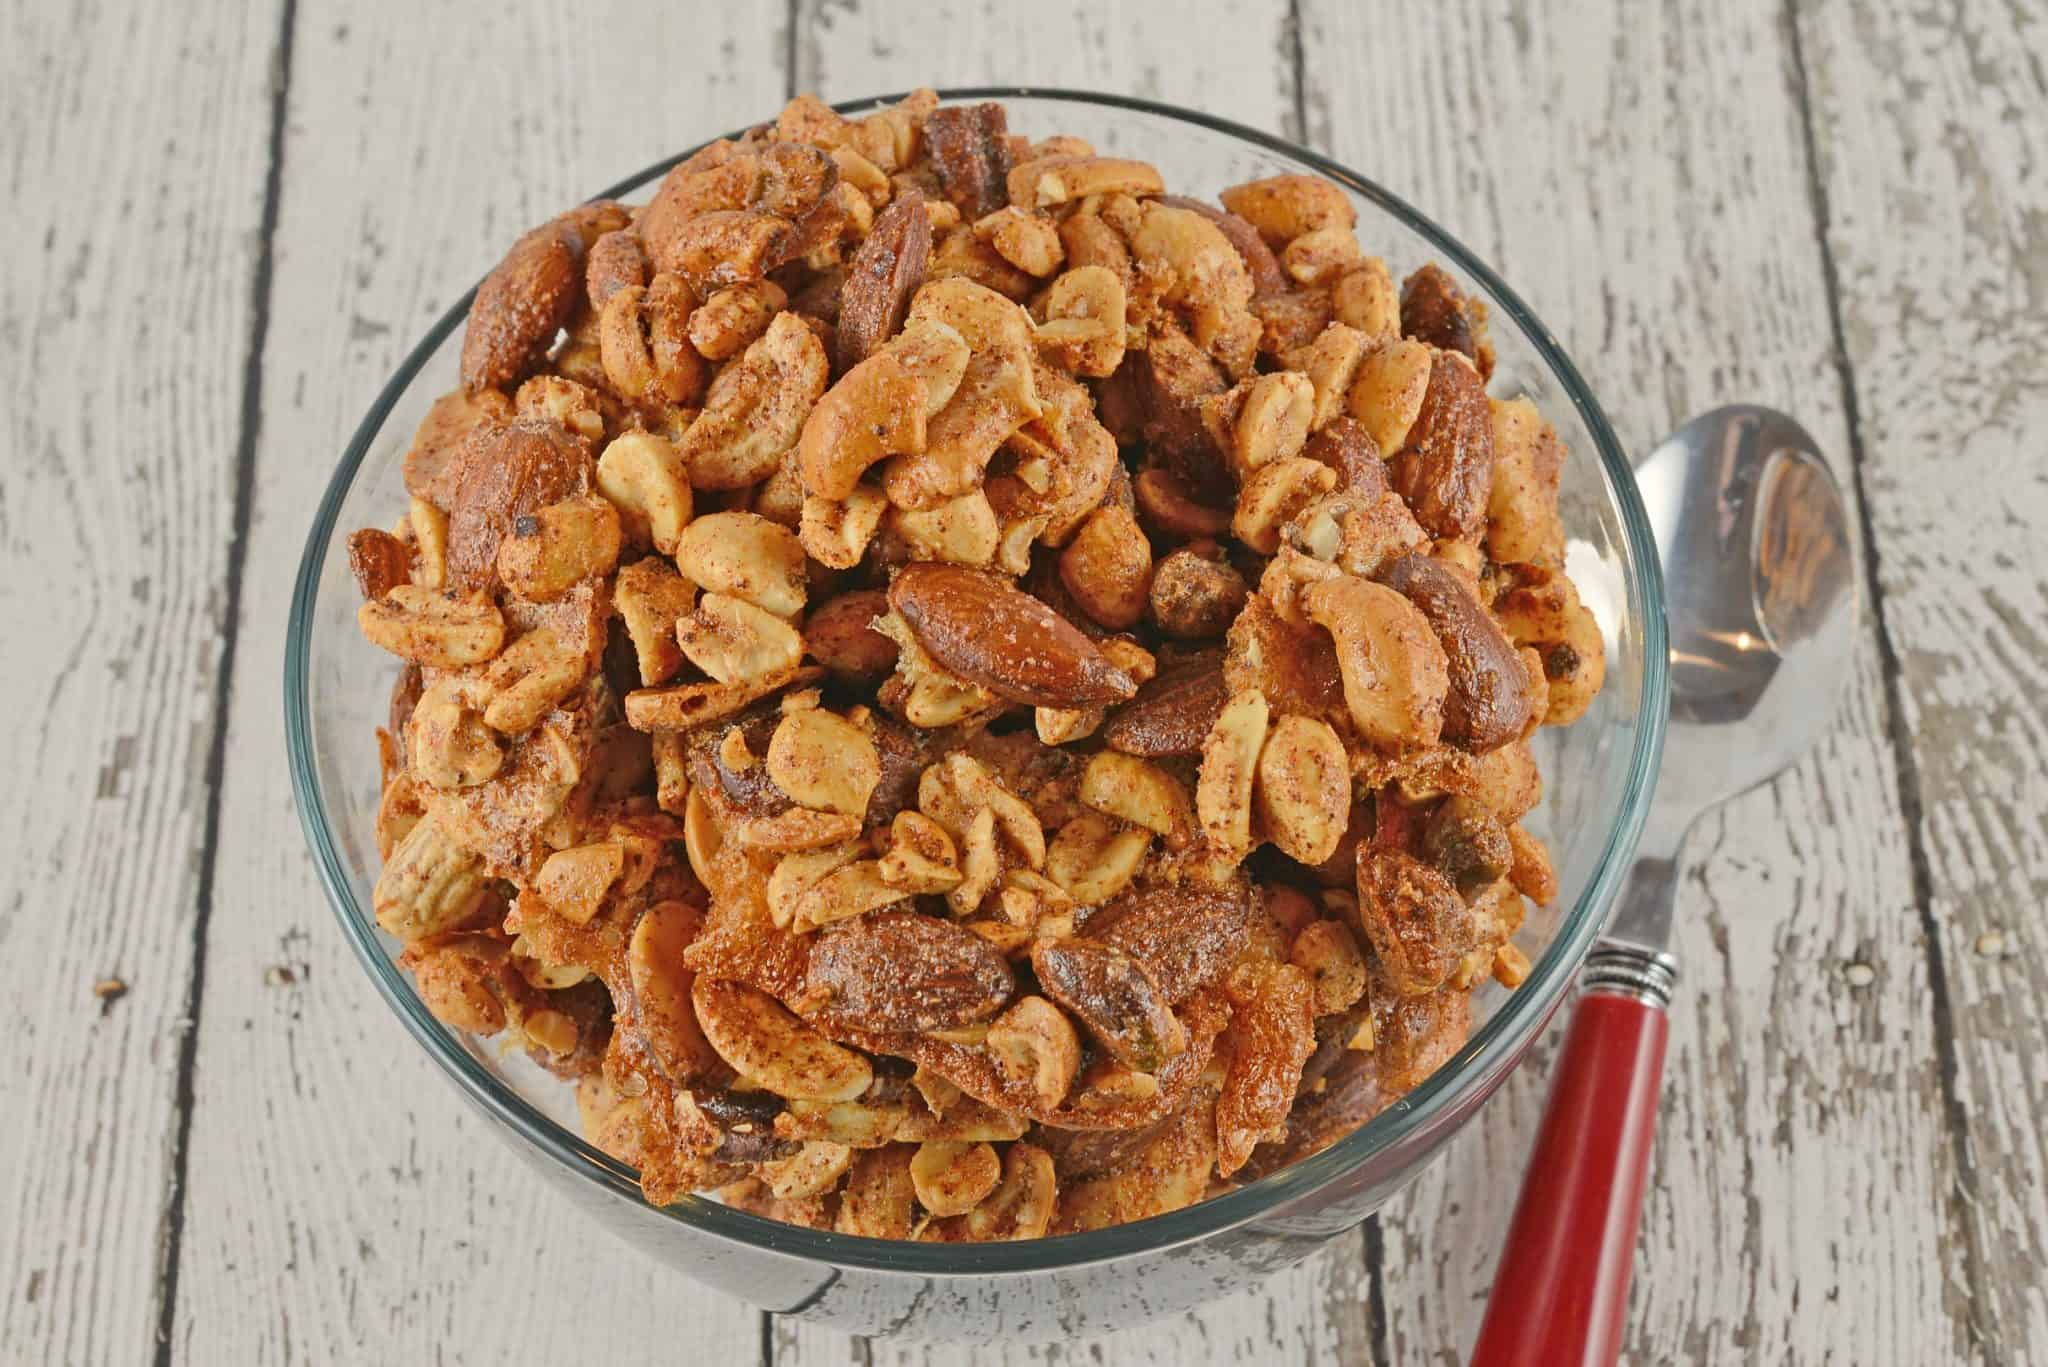 Spiced Nuts are a easy & flavorful blend of roasted nuts. Assorted with shelled peanuts, cashews, pistachios & almonds! This recipe is the perfect party snack! #snackmix #spicednutsrecipe #mixednuts www.savoryexperiments.com